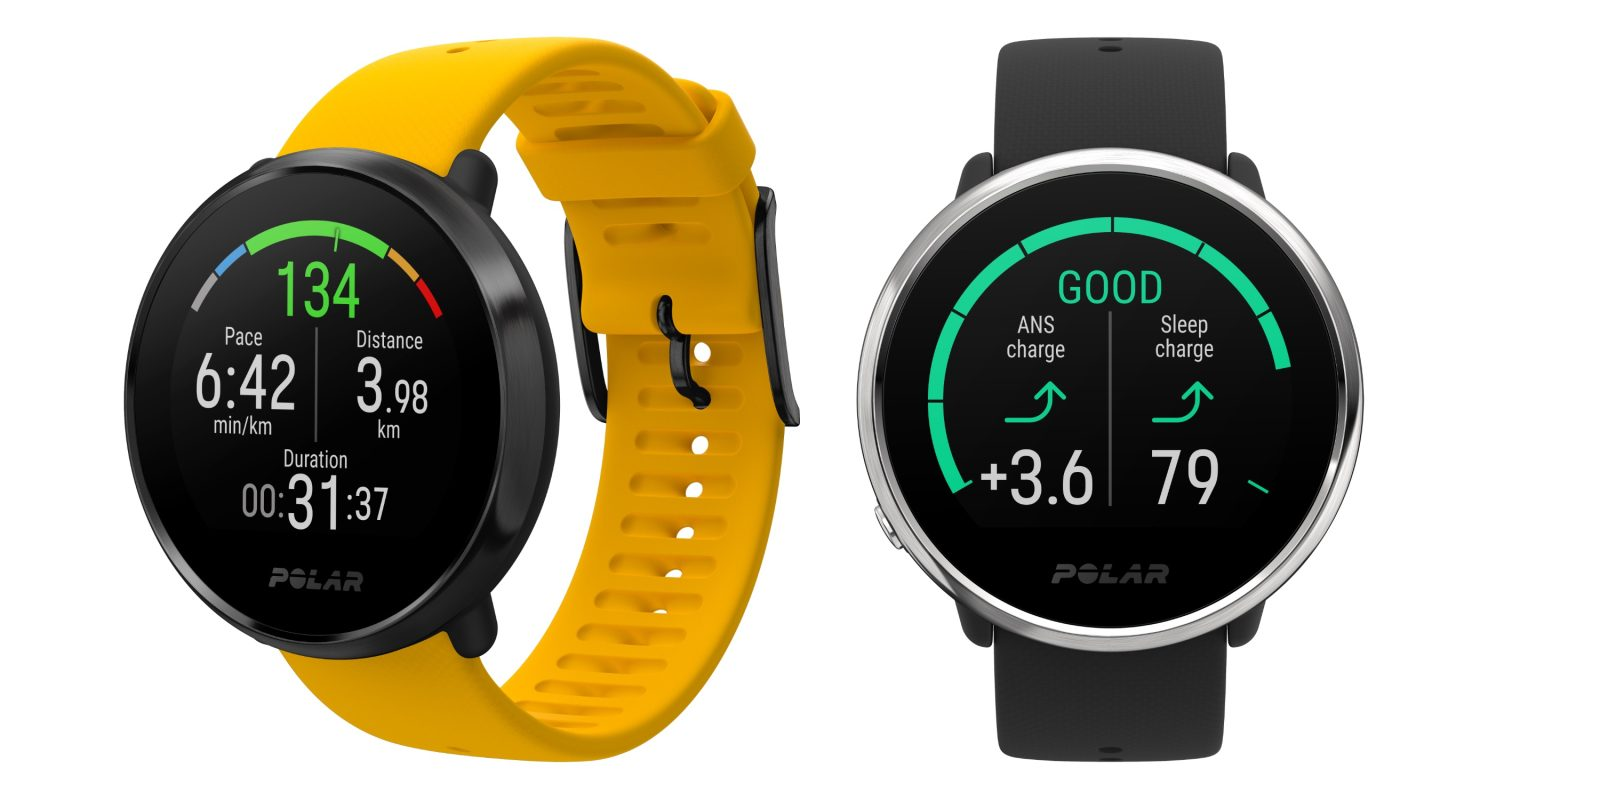 Polar Ignite sport watch heats up Apple Watch competition with sleep and fitness coaching